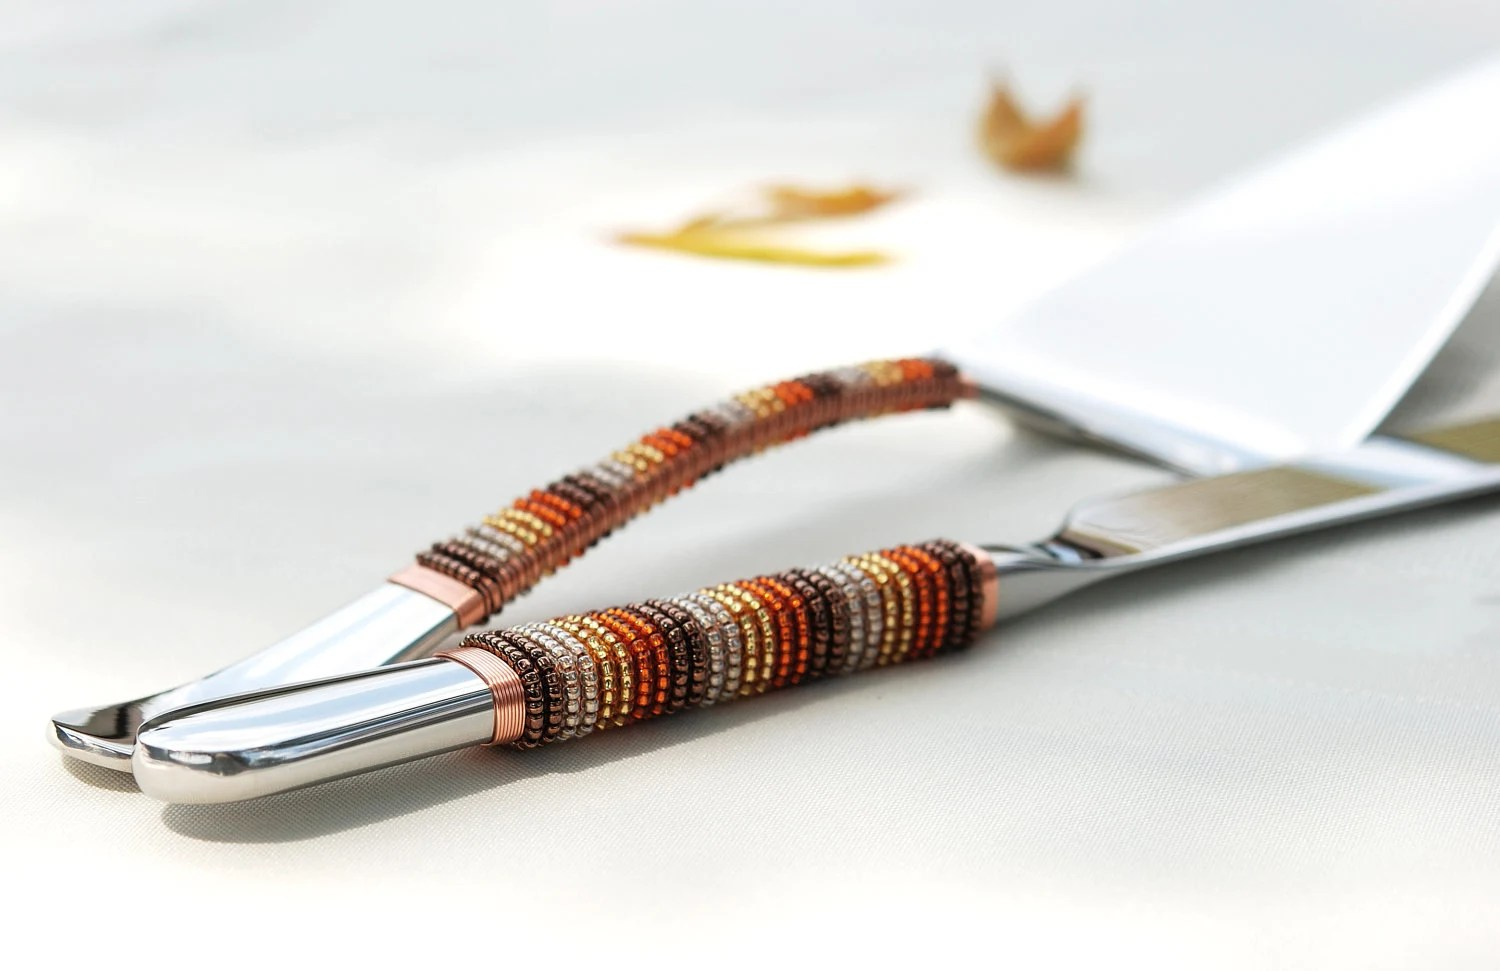 FALL Wedding Cake Server And Knife Set Beaded In Autumn Harvest Brown, Gold, Orange And Beige  THANKSGIVING - Beadz2Pleaz